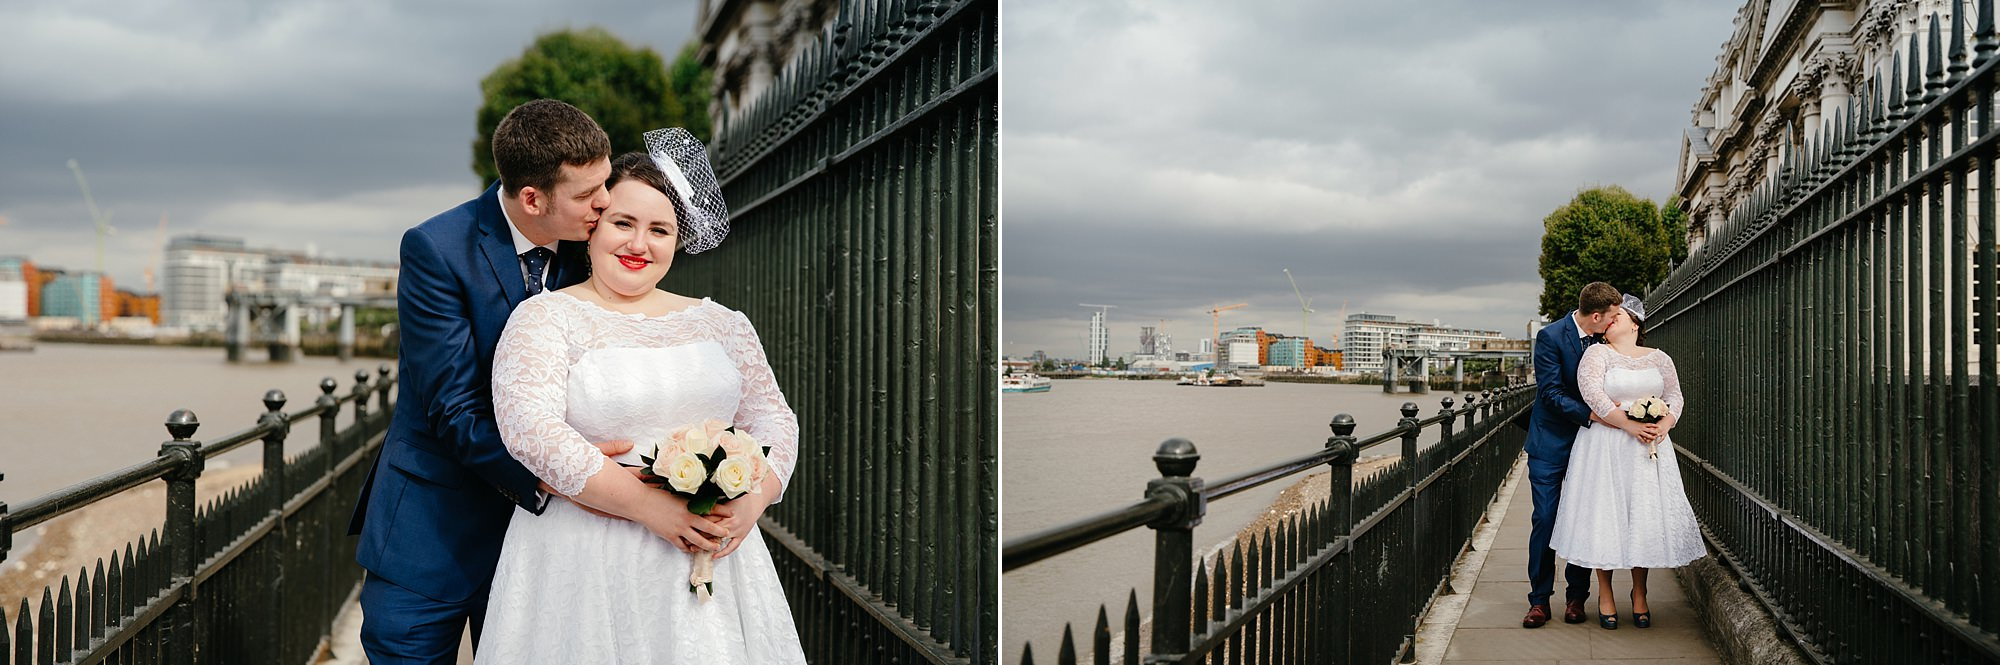 Trafalgar Tavern wedding bride and groom portrait by Thames river